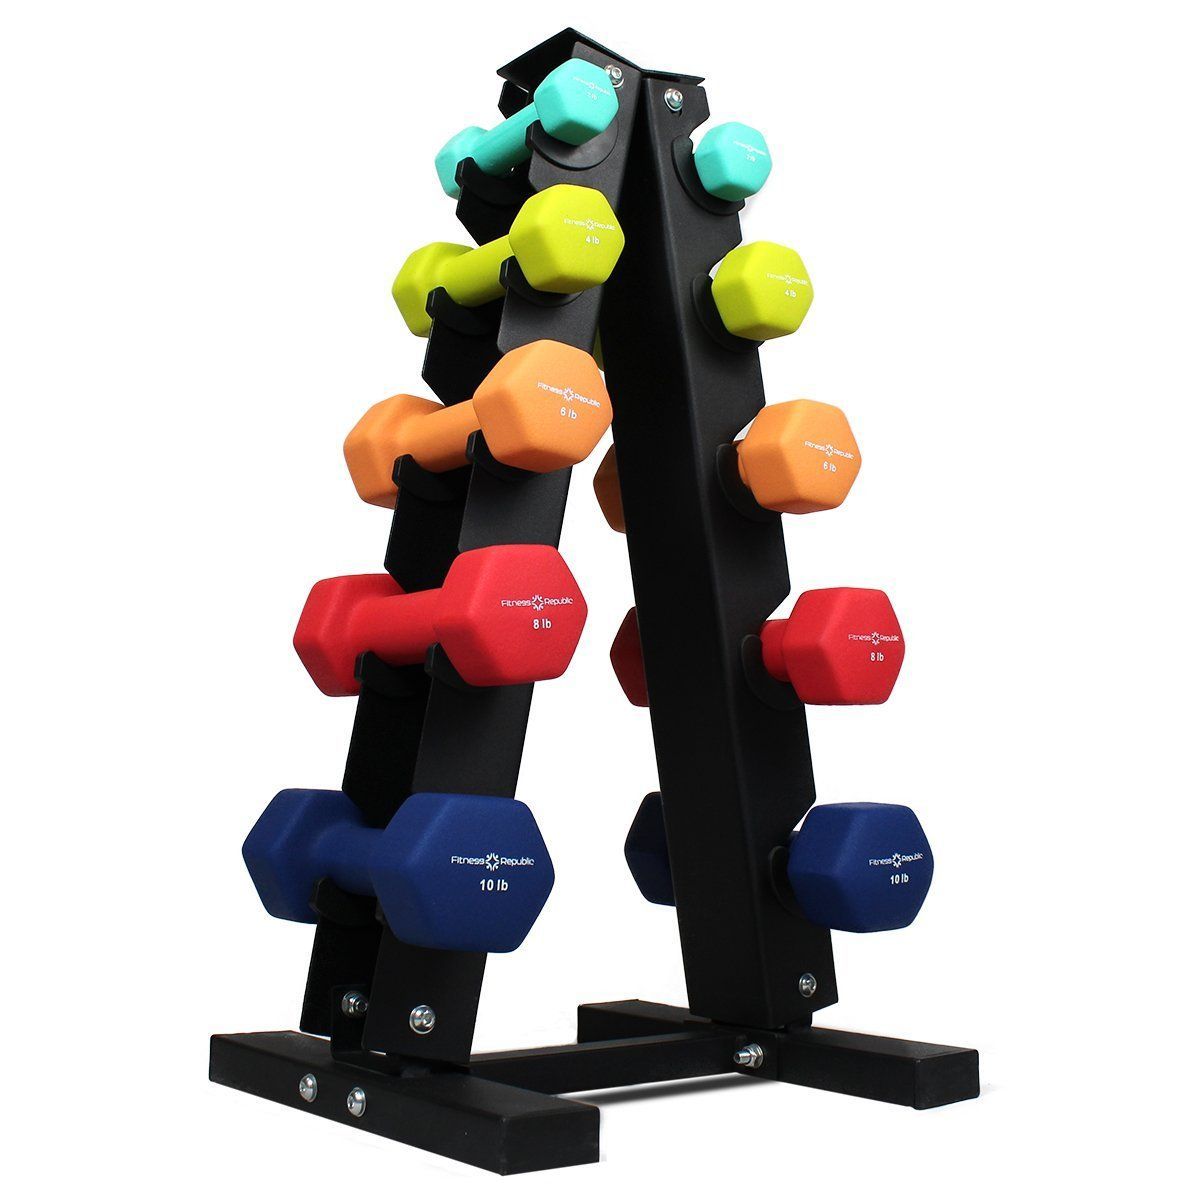 Fitness Republic Neoprene Dumbbells Pairs 2lb 4lb 6lb 8lb 10lb With 5 Tier Rack Stackable Weight Neoprene Dumbbells Dumbbell Rack Dumbbell Set With Rack